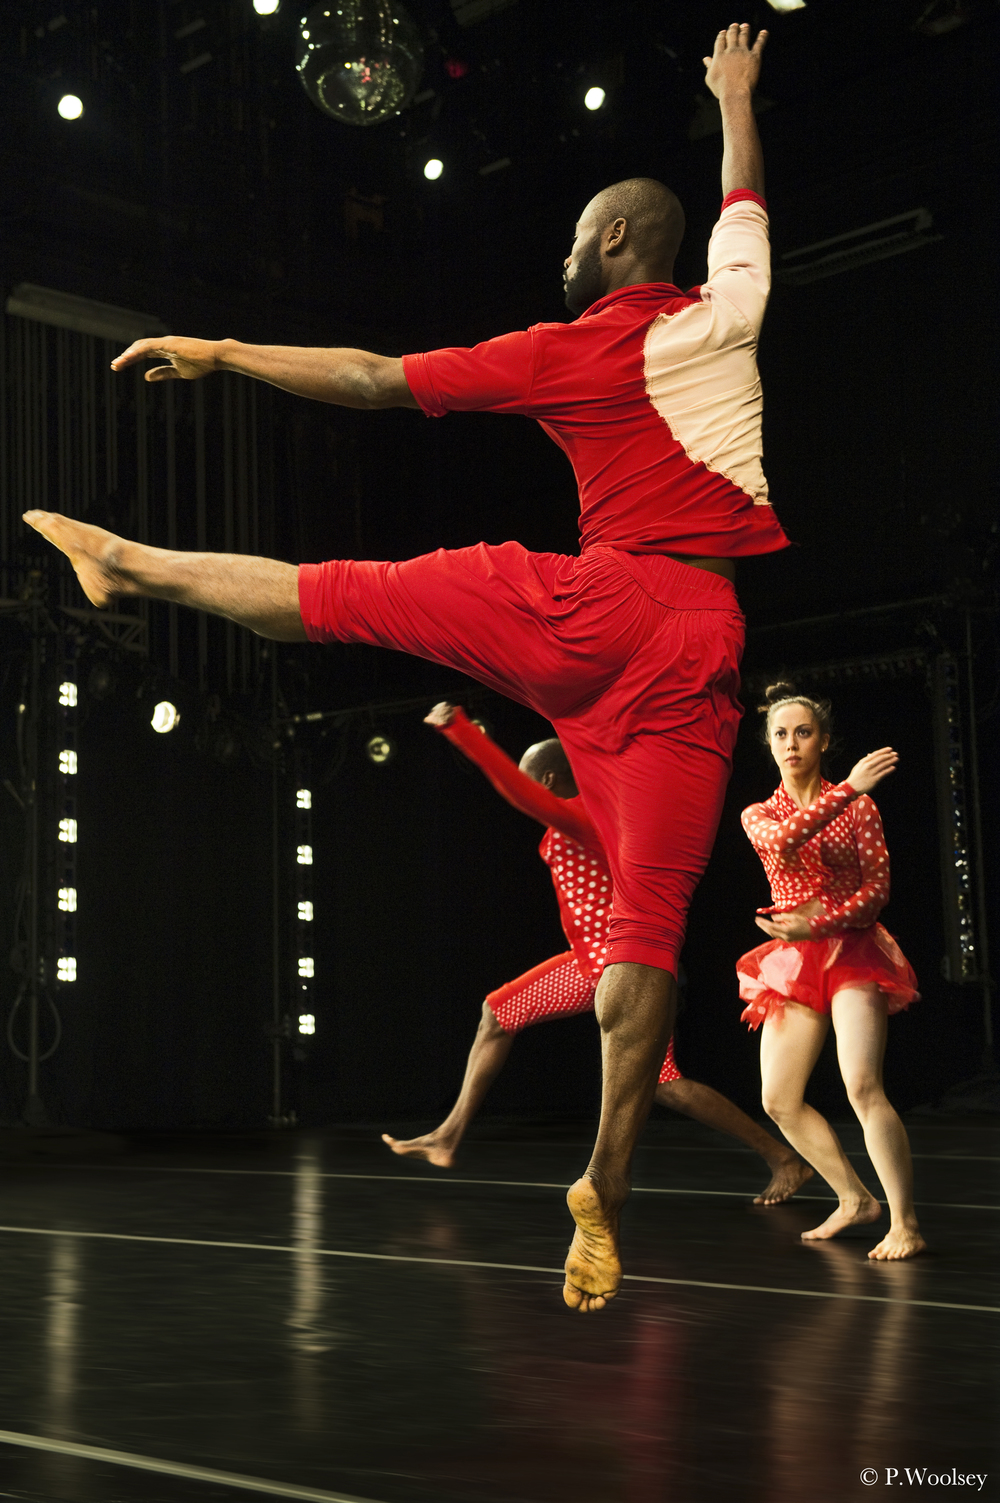 Photo Peggy Woolsey_dancers Clement Mensah, Paul Hamilton, Anna Schön.jpg